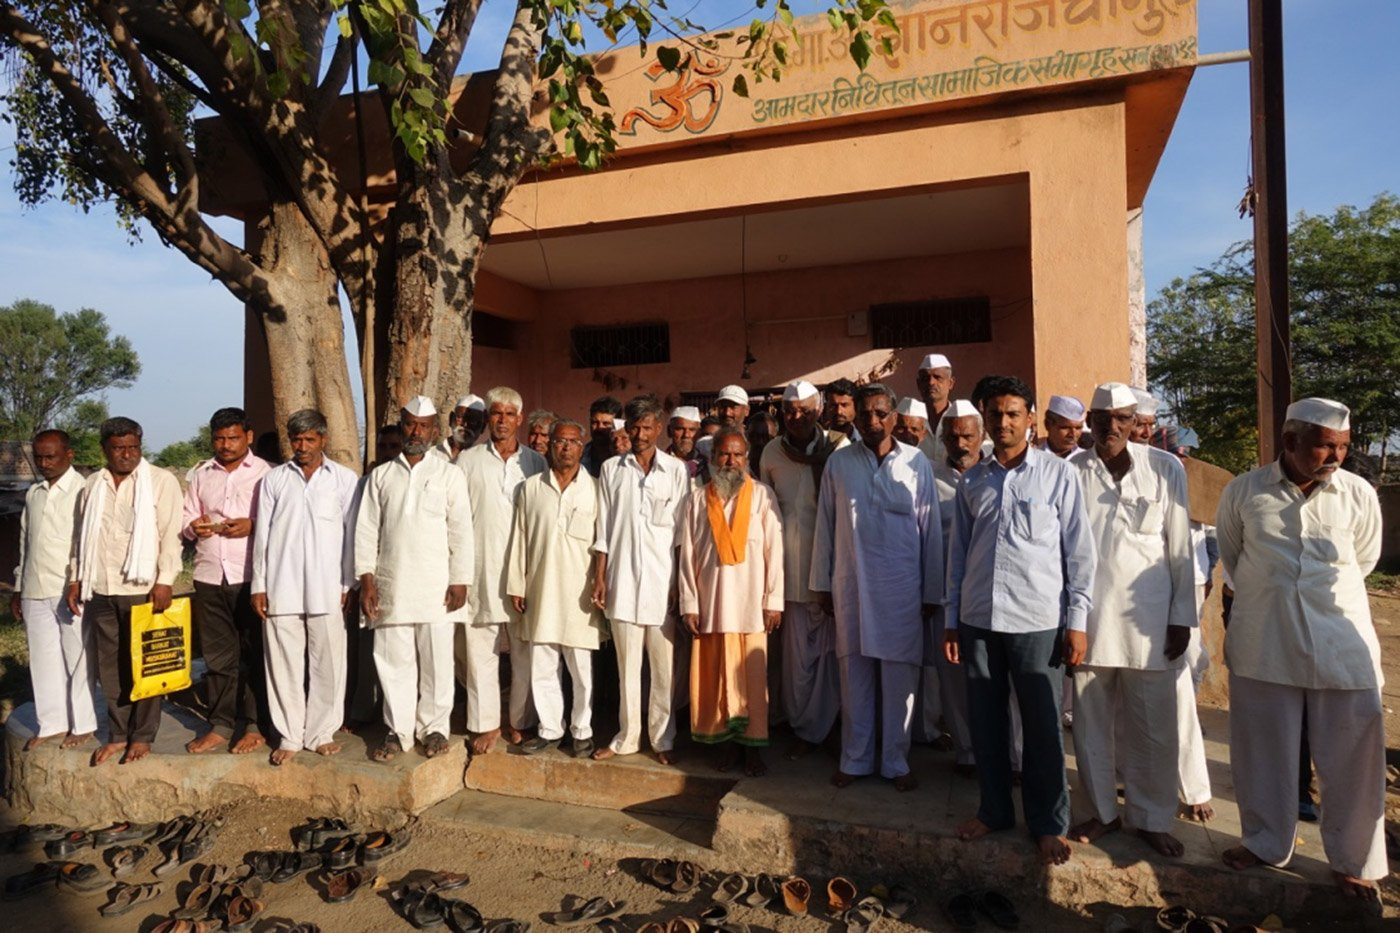 Farmers standing in front of Osamabad District Central Operative Bank